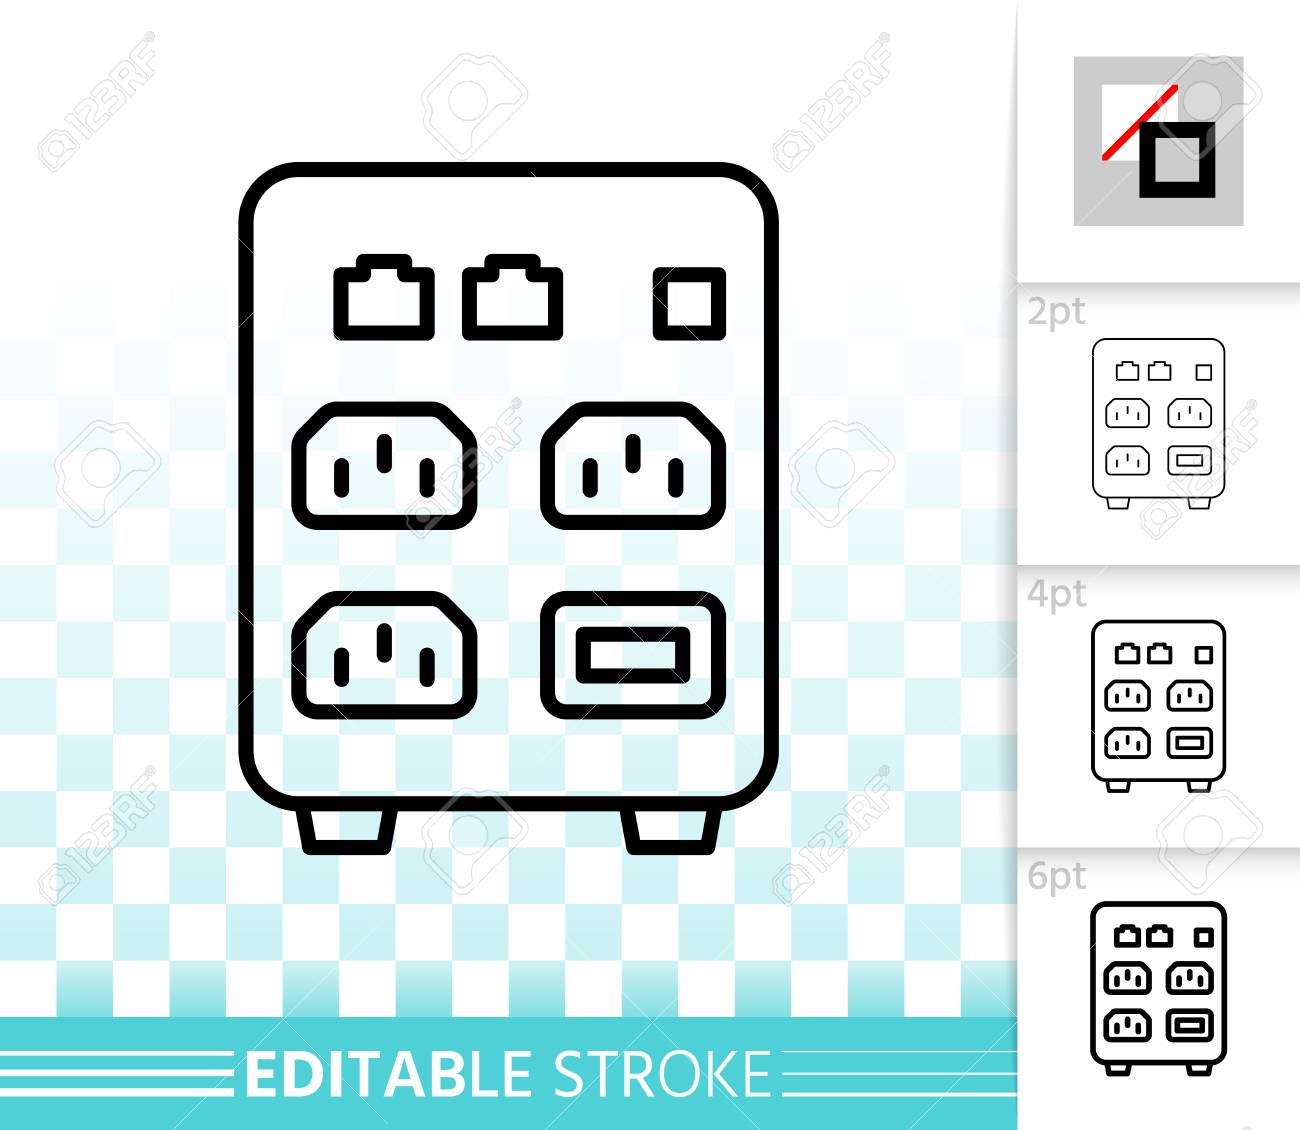 hight resolution of outline sign of uninterruptible power supply box linear pictogram with